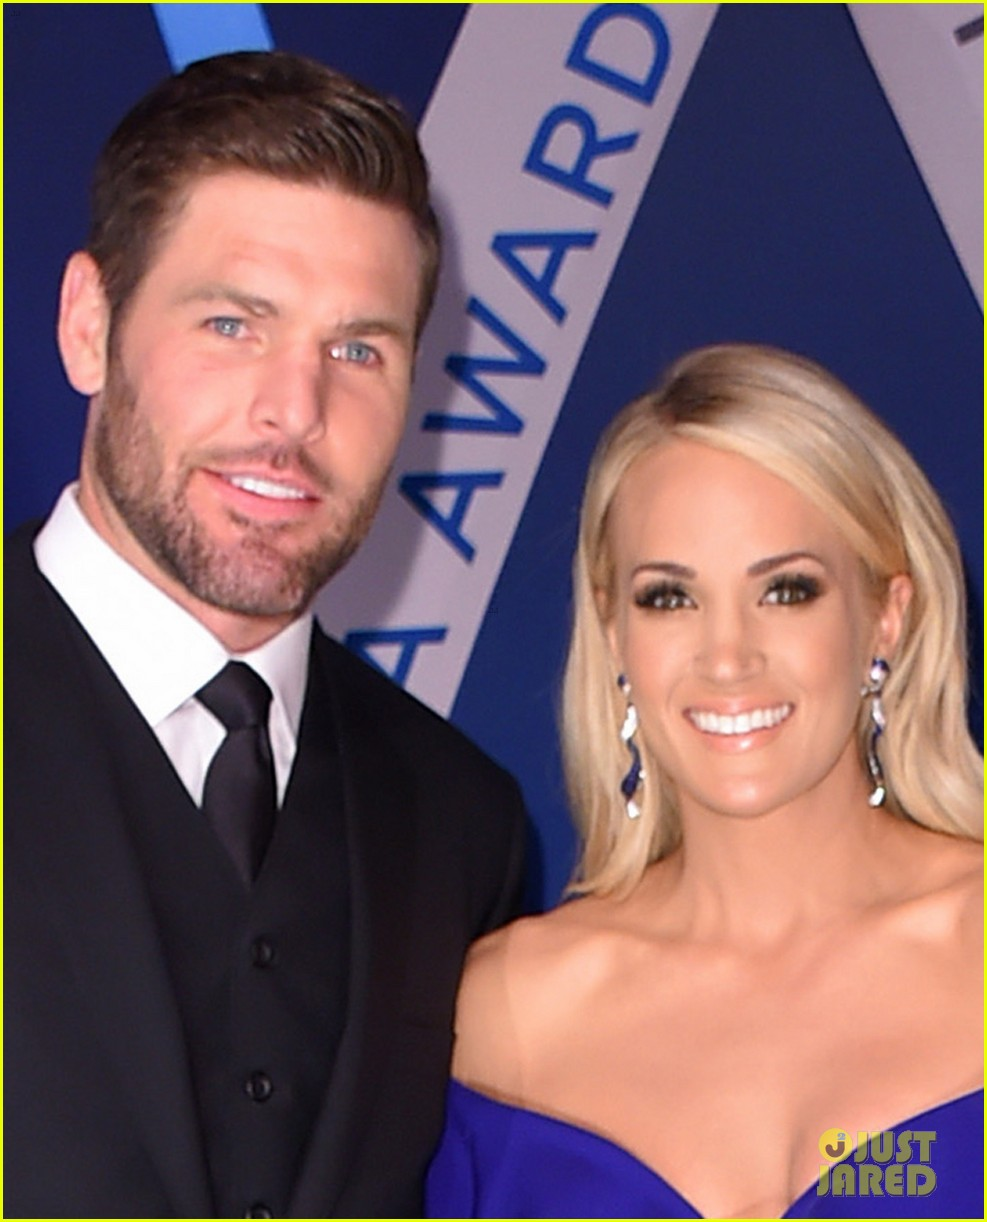 Carrie underwood brings husband mike fisher to cma awards for Carrie underwood husband mike fisher